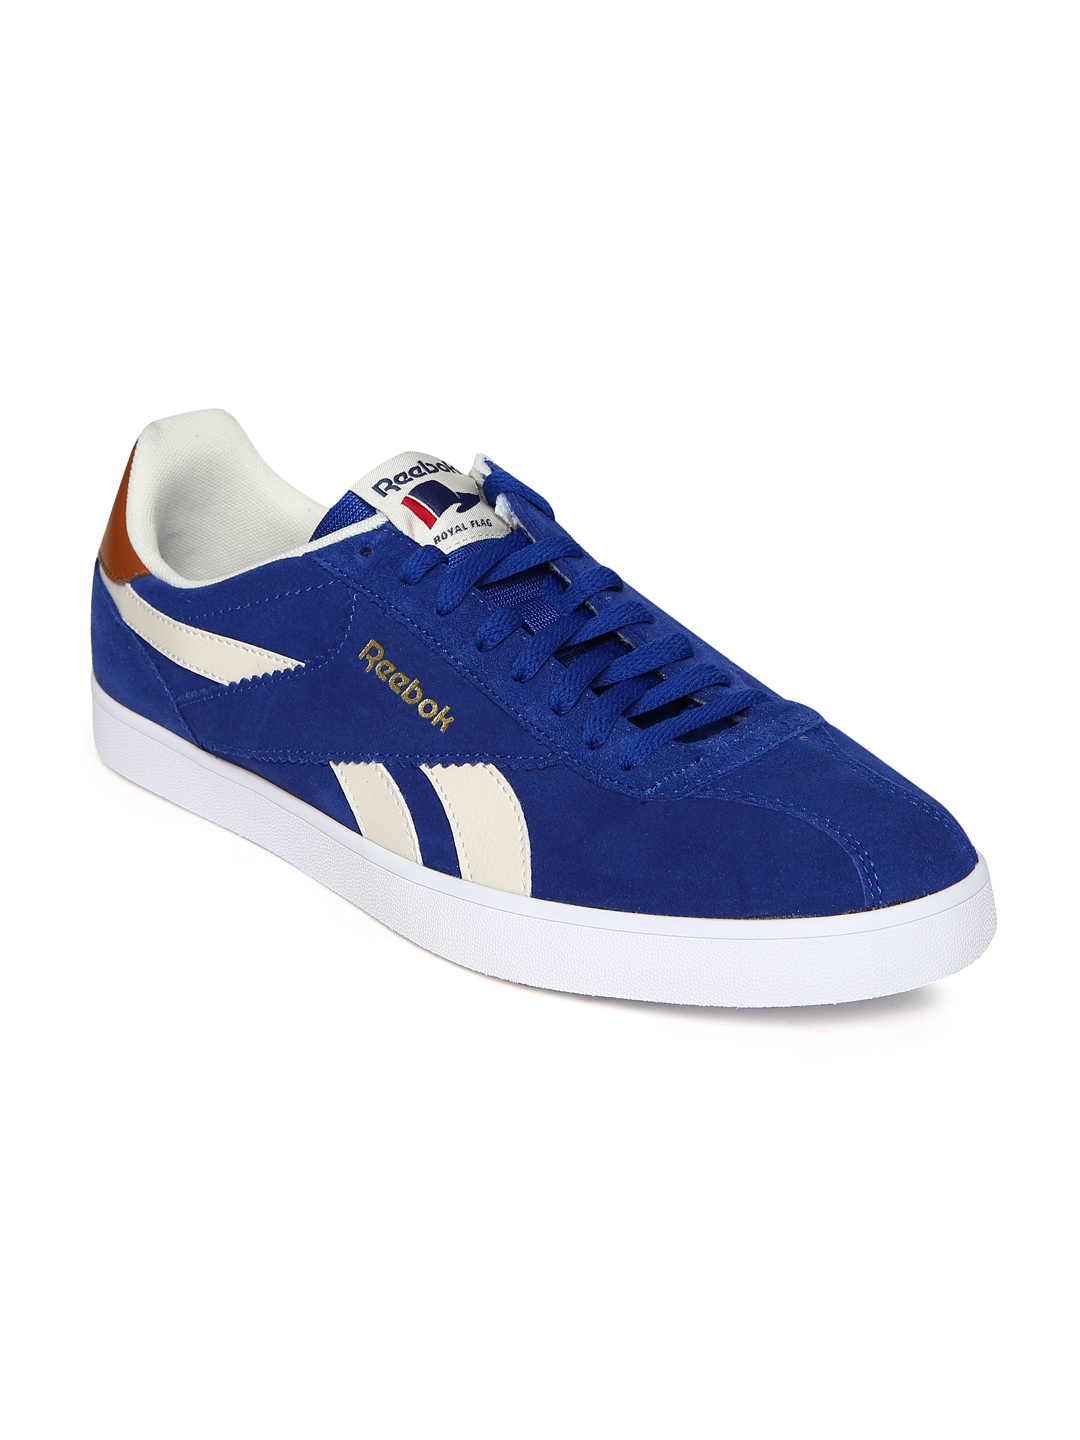 Lee Cooper Sports Shoes